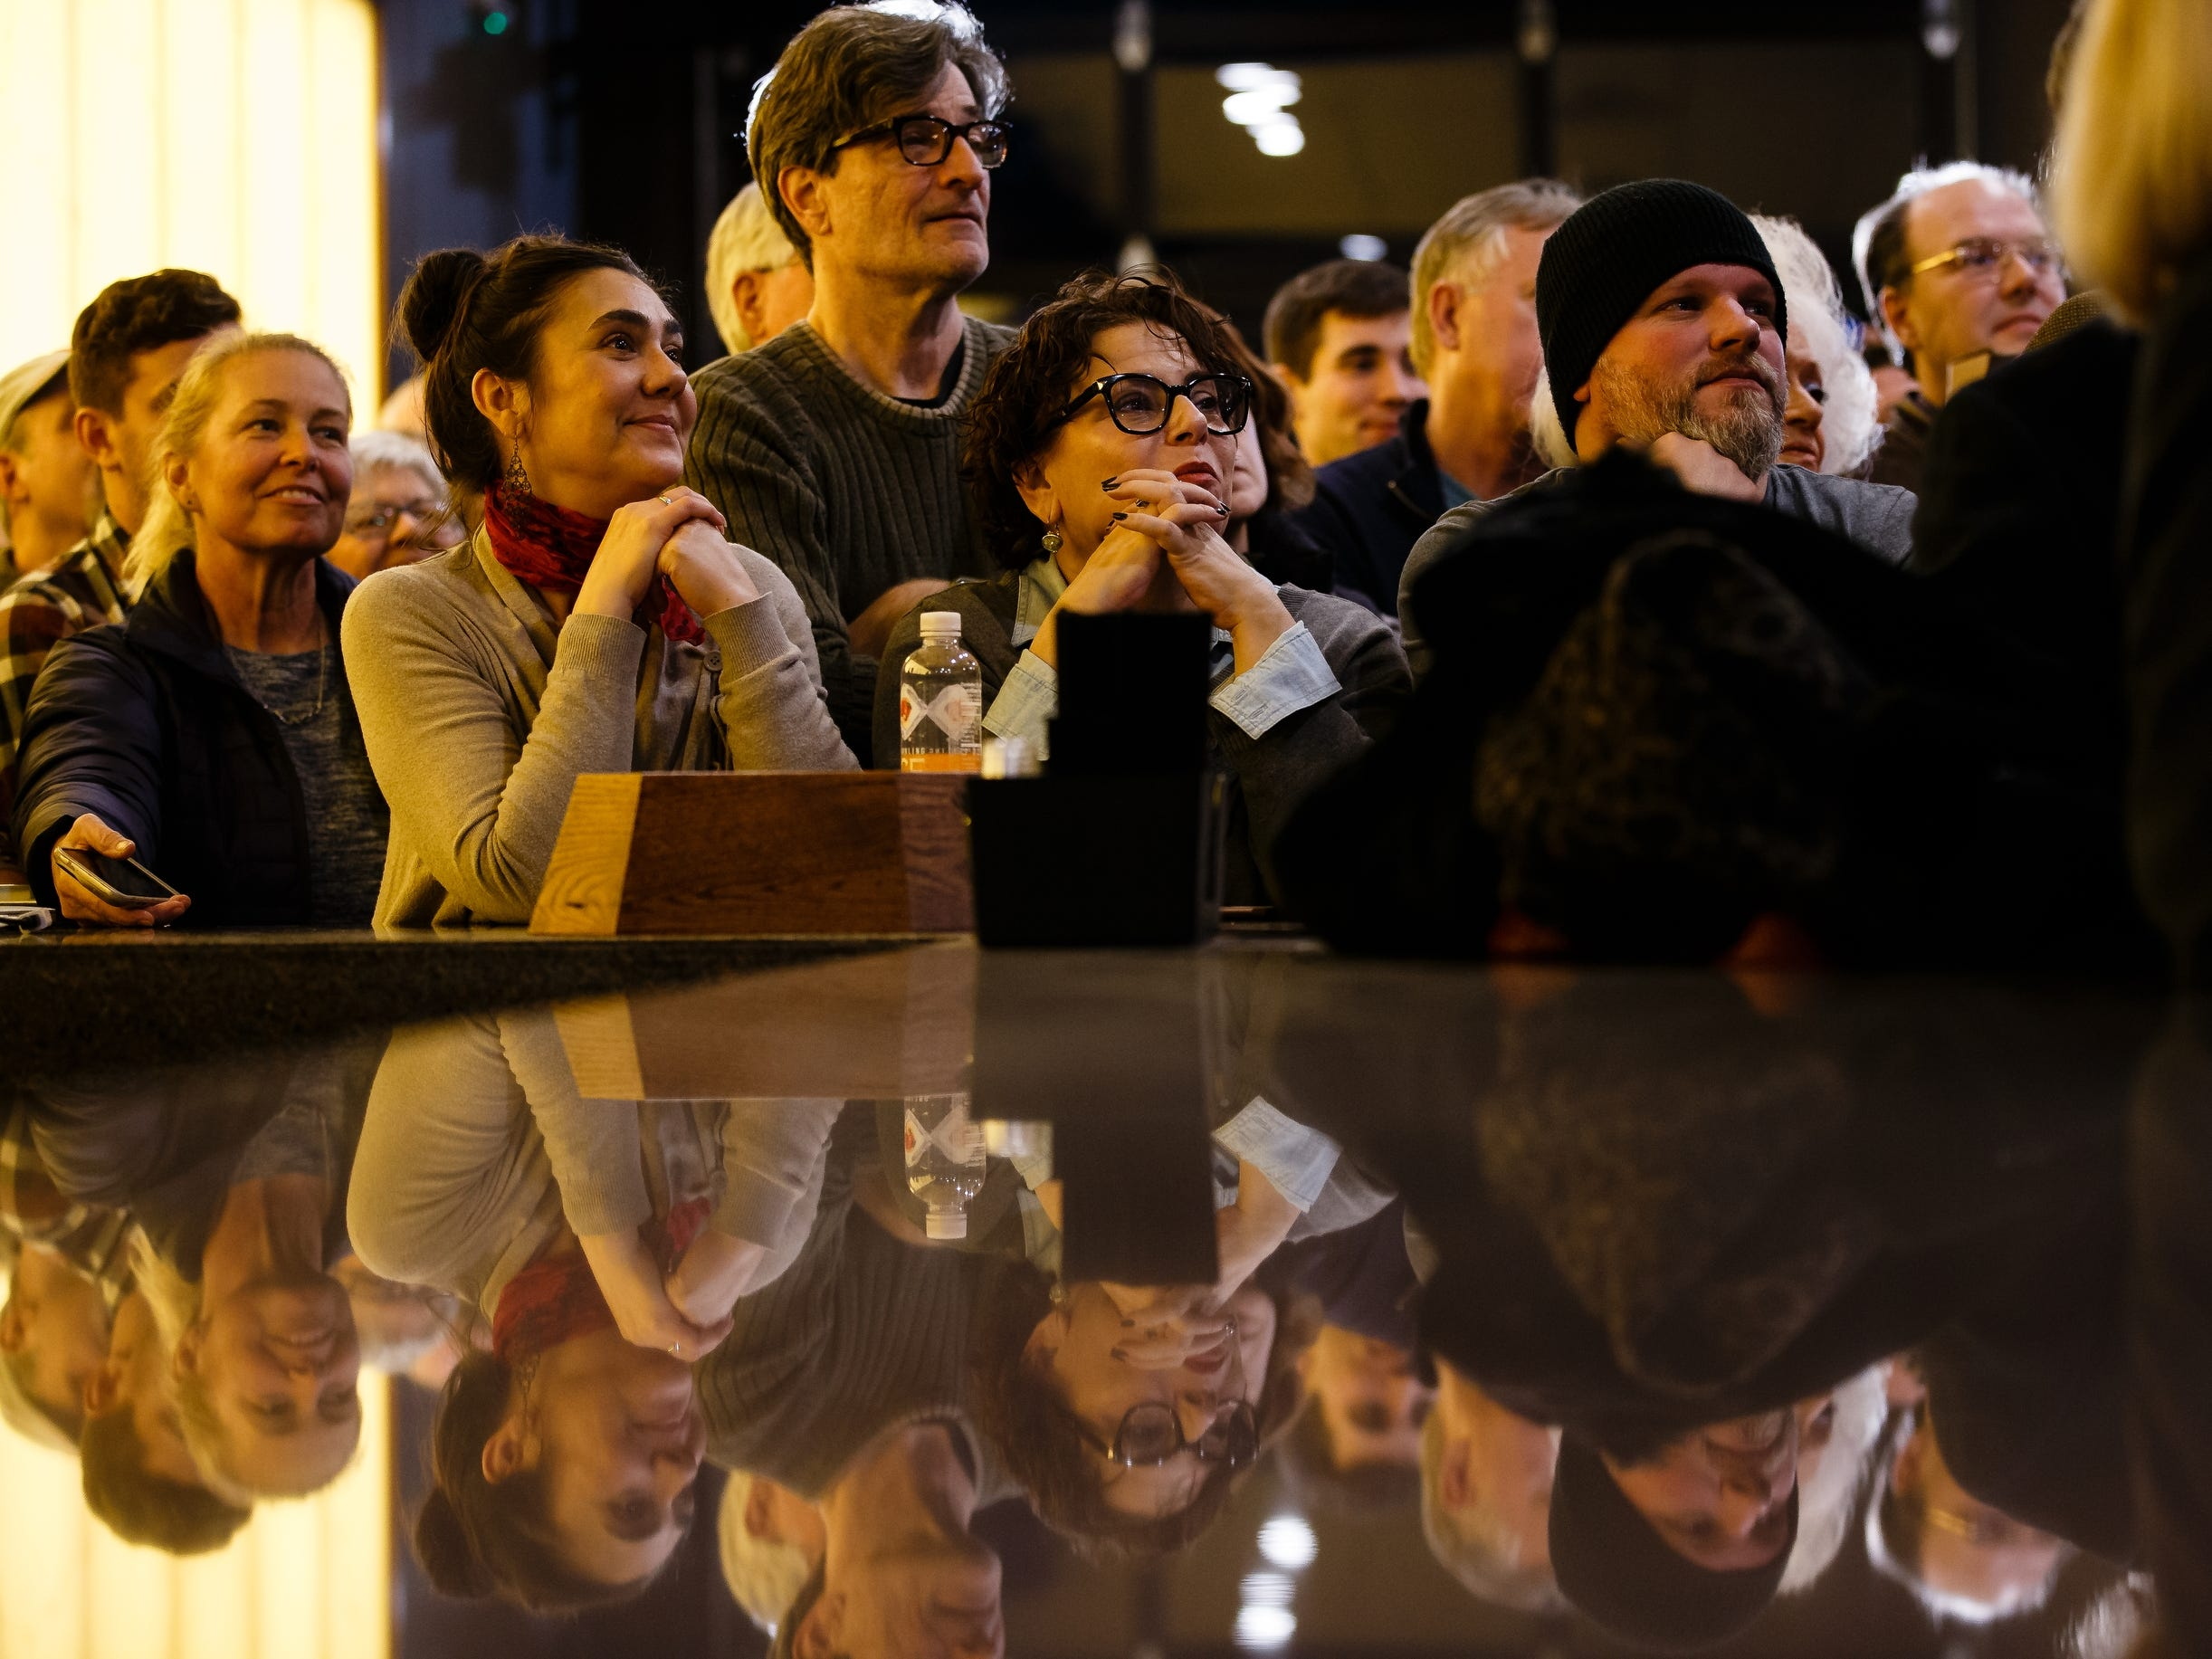 Spectators watch as Sen. Elizabeth Warren speaks during an event on her first trip through Iowa as a possible 2020 presidential candidate on Friday, Jan. 4, 2019, in Council Bluffs.